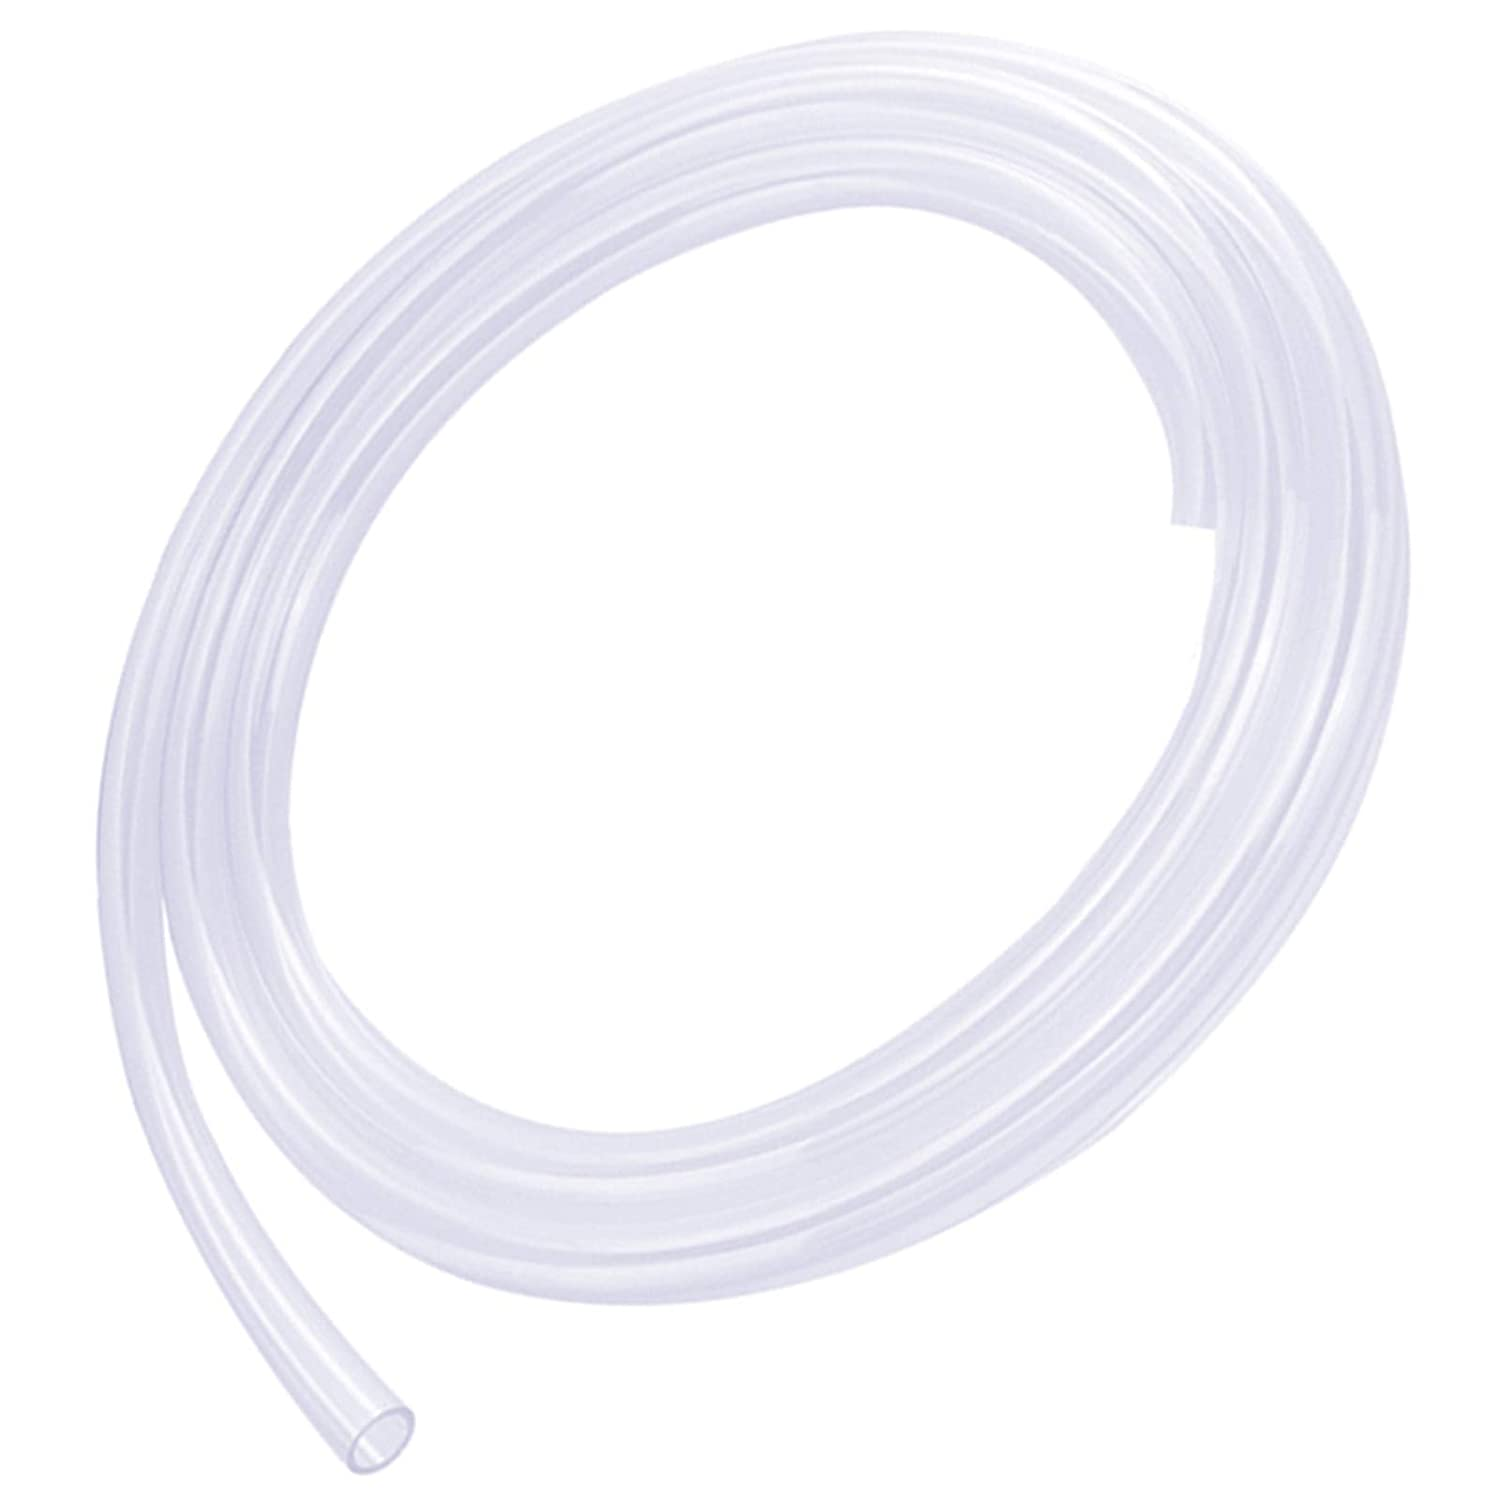 "Silicone Tube 1/8""(3mm) ID x 3/16""(5mm) OD Clear Flexible Silicone Rubber Tubing Water Air Hose Pipe Transparent (3.3ft / 1m;3 x 5mm)"